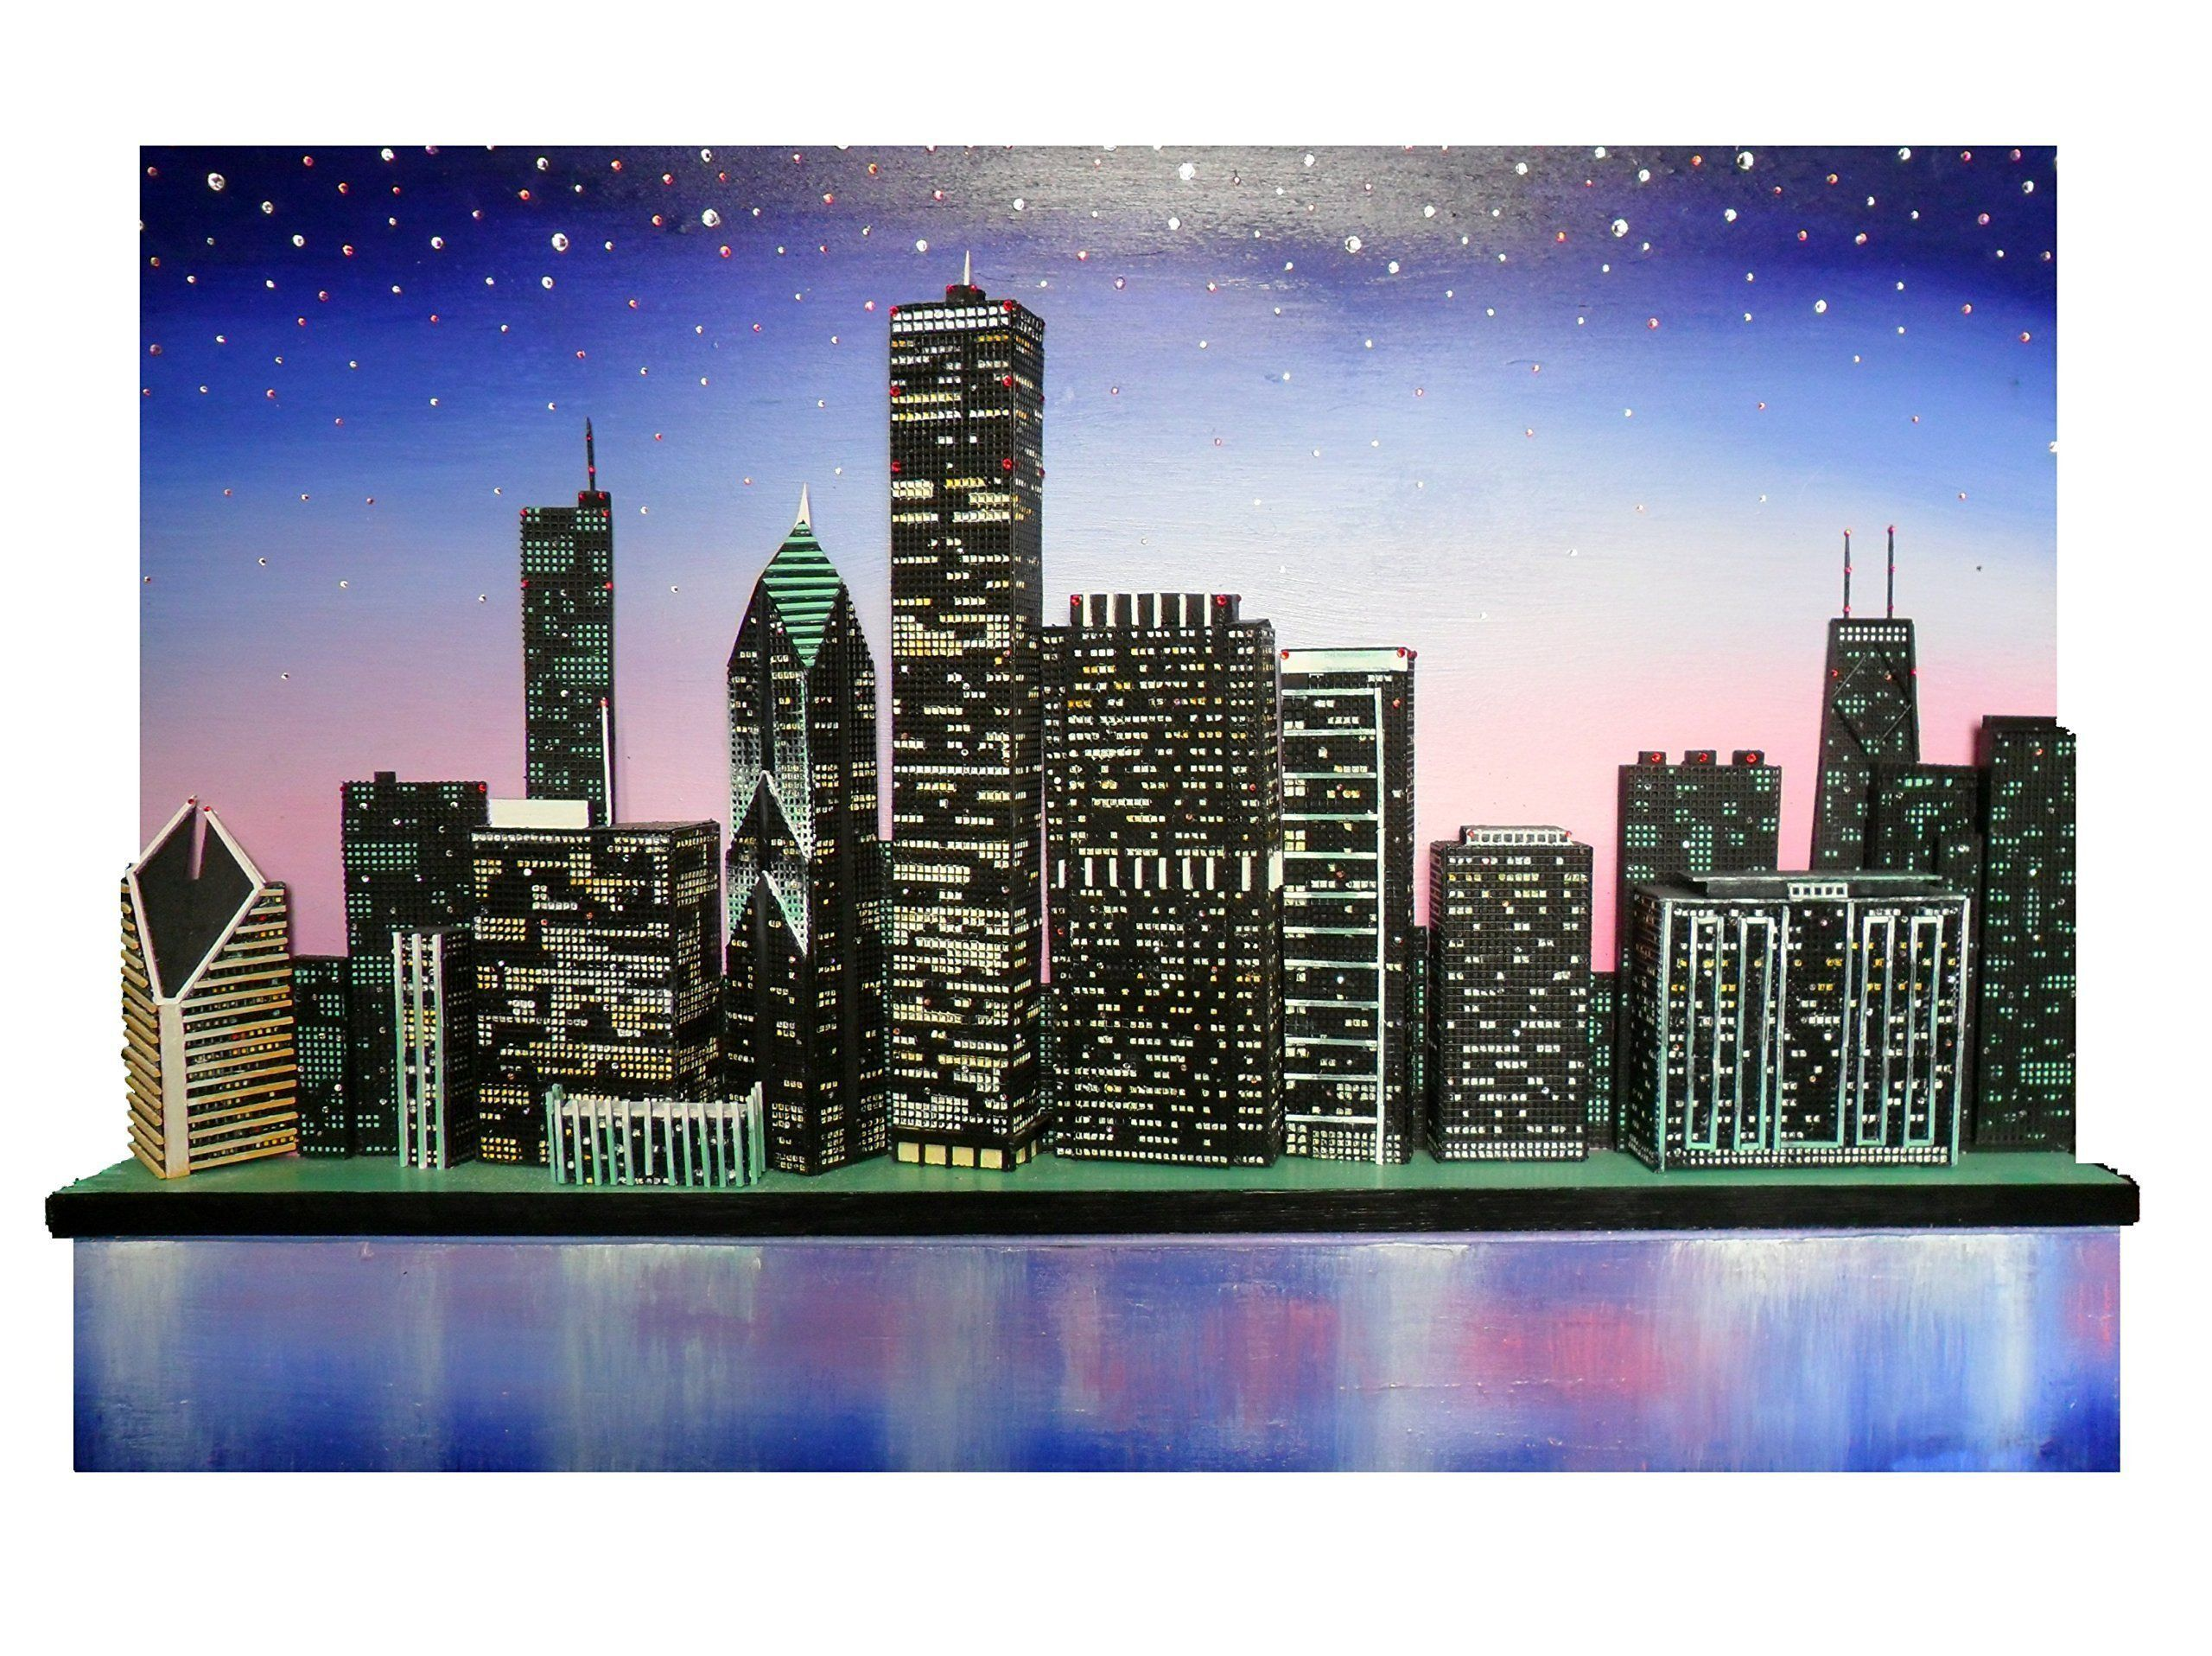 """Original Chicago Skyline 3D from the Lake Michigan View. Title: Chicago in Twilight Size:36"""" x 24"""" x 1-1/2"""""""" deep. ( add another 3-1/2"""" to the depth) Three week of intensive labor. One of a kind - Painstakingly made to scale Accurate View from Lake Michigan Over 500 hand set imported Austrian Swarvoski Crystals. Buildings are carved wood and other mixed media. Panel used in highly expensive rigid wood panel frame of the highest standards. One of a Kind Original Piece - Award Winner…"""